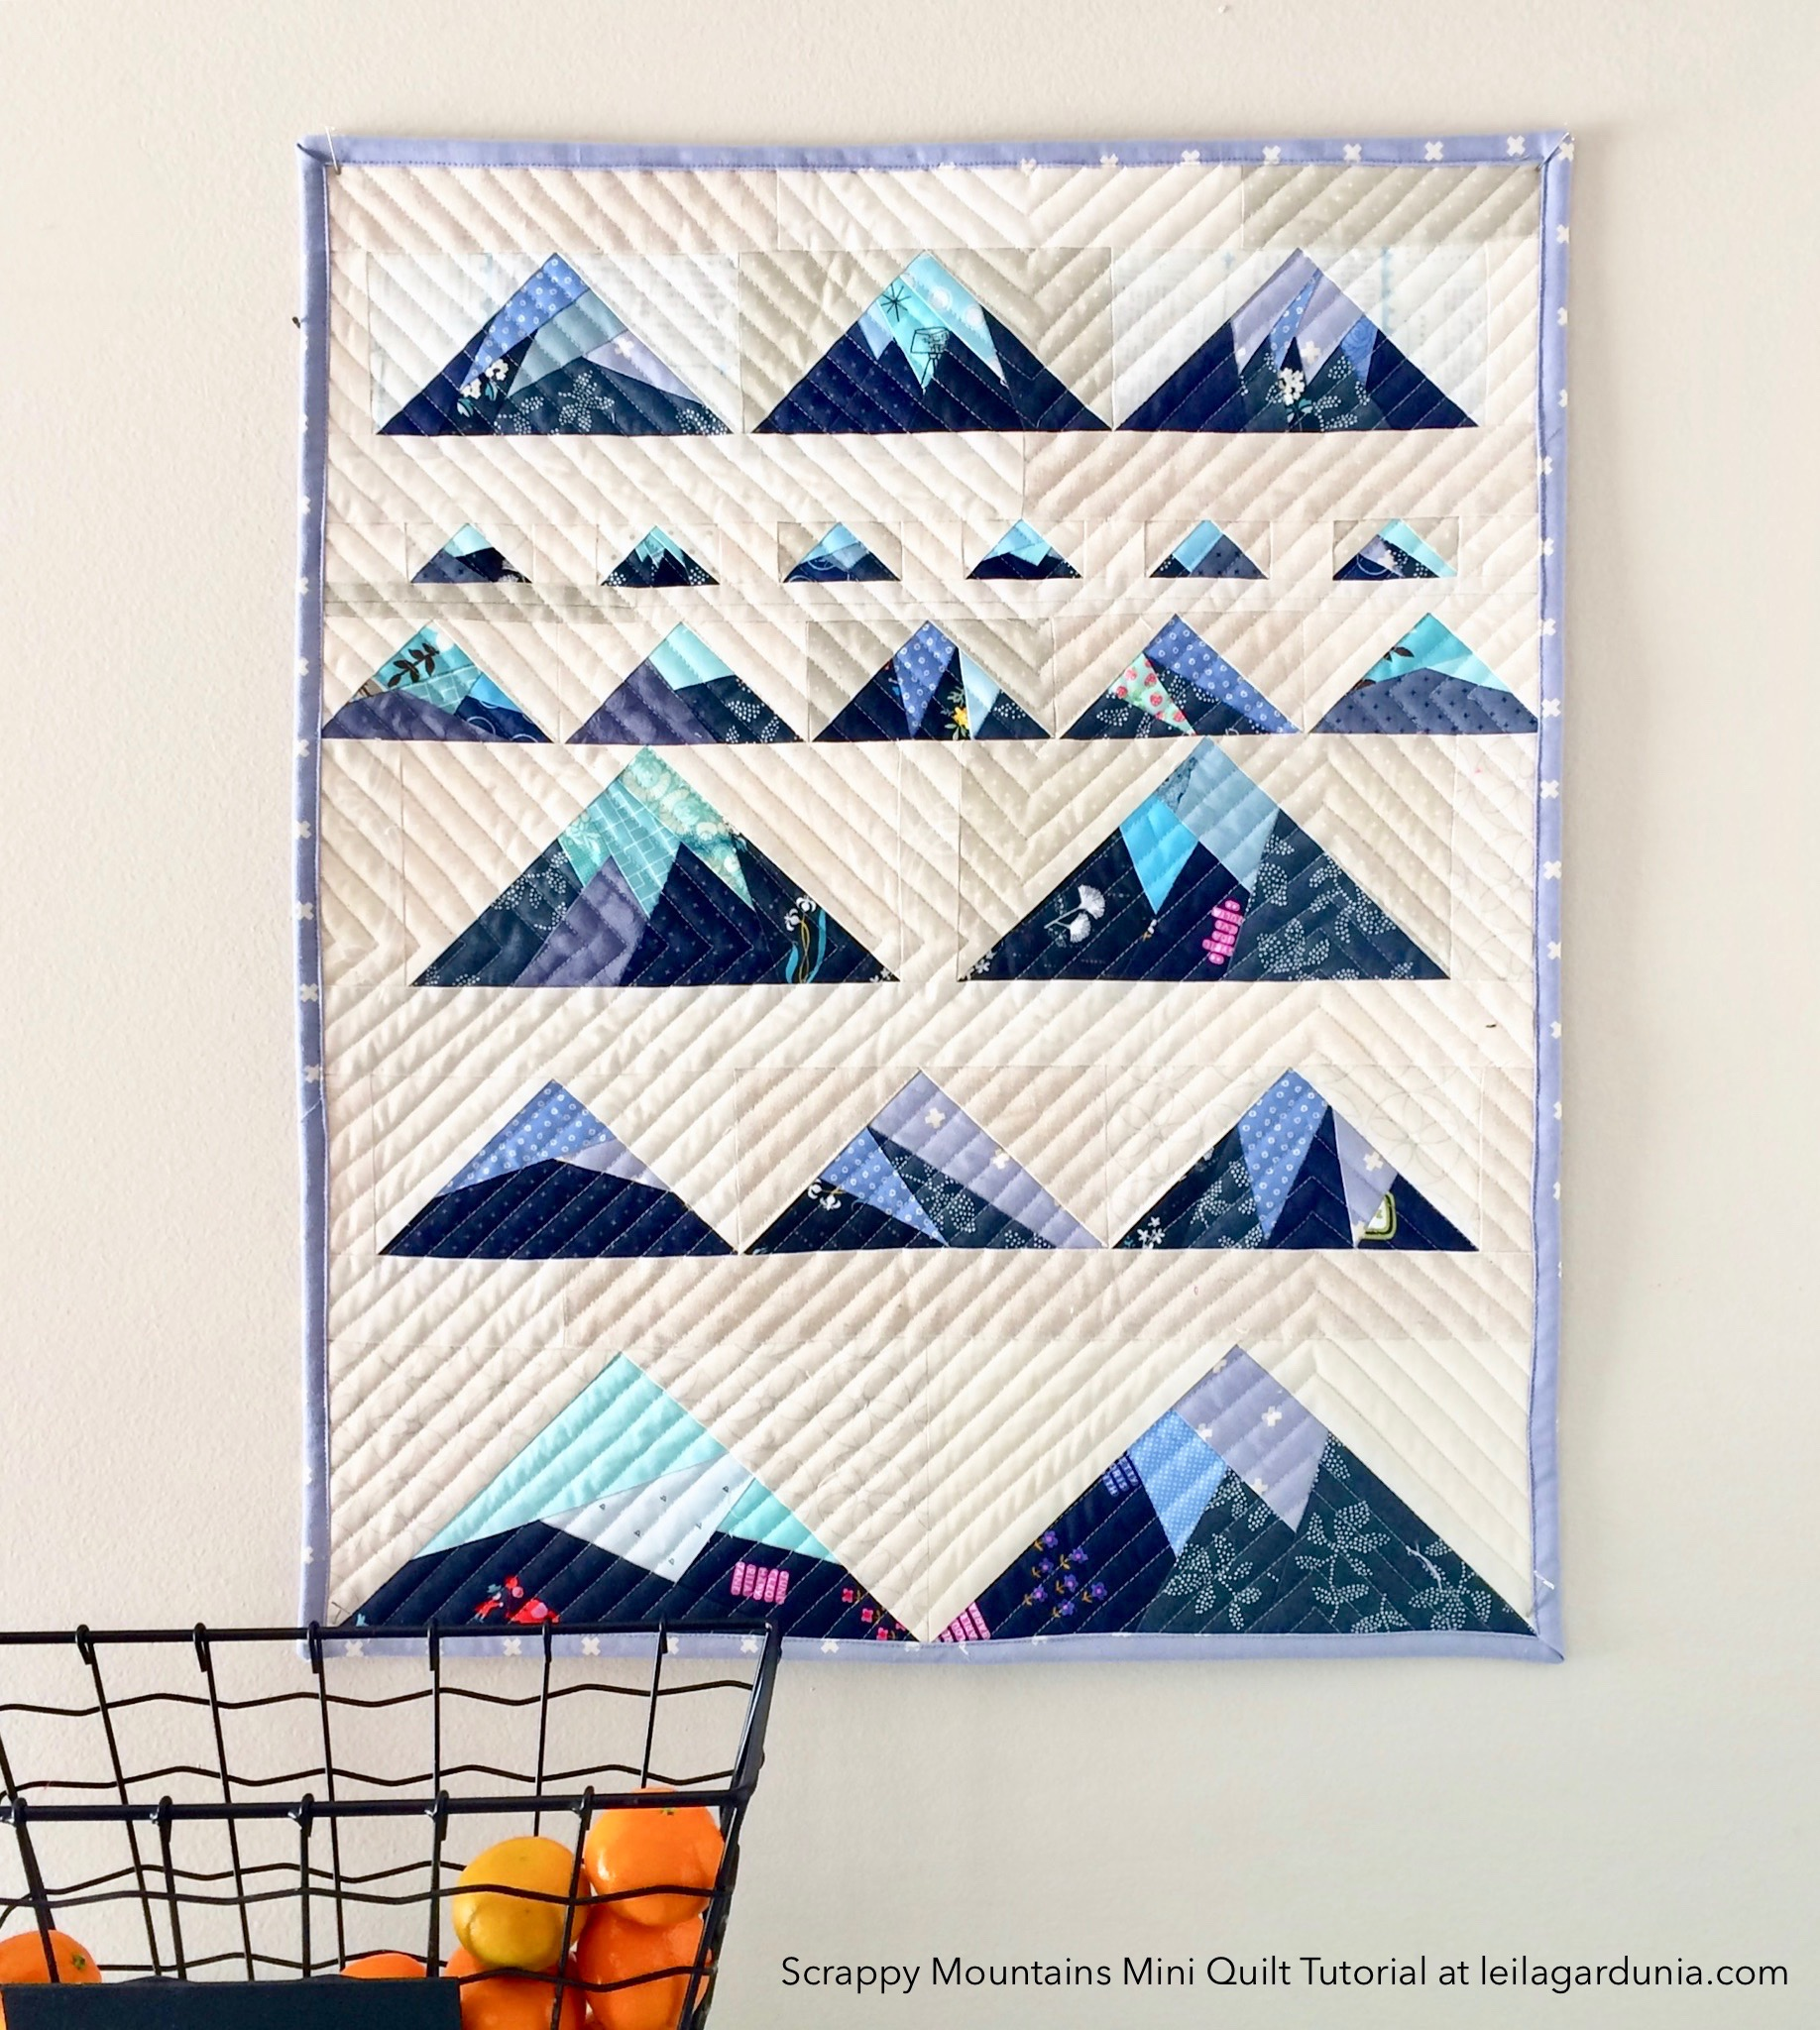 Scrappy Mountain Mini Quilt Tutorial 2.jpg